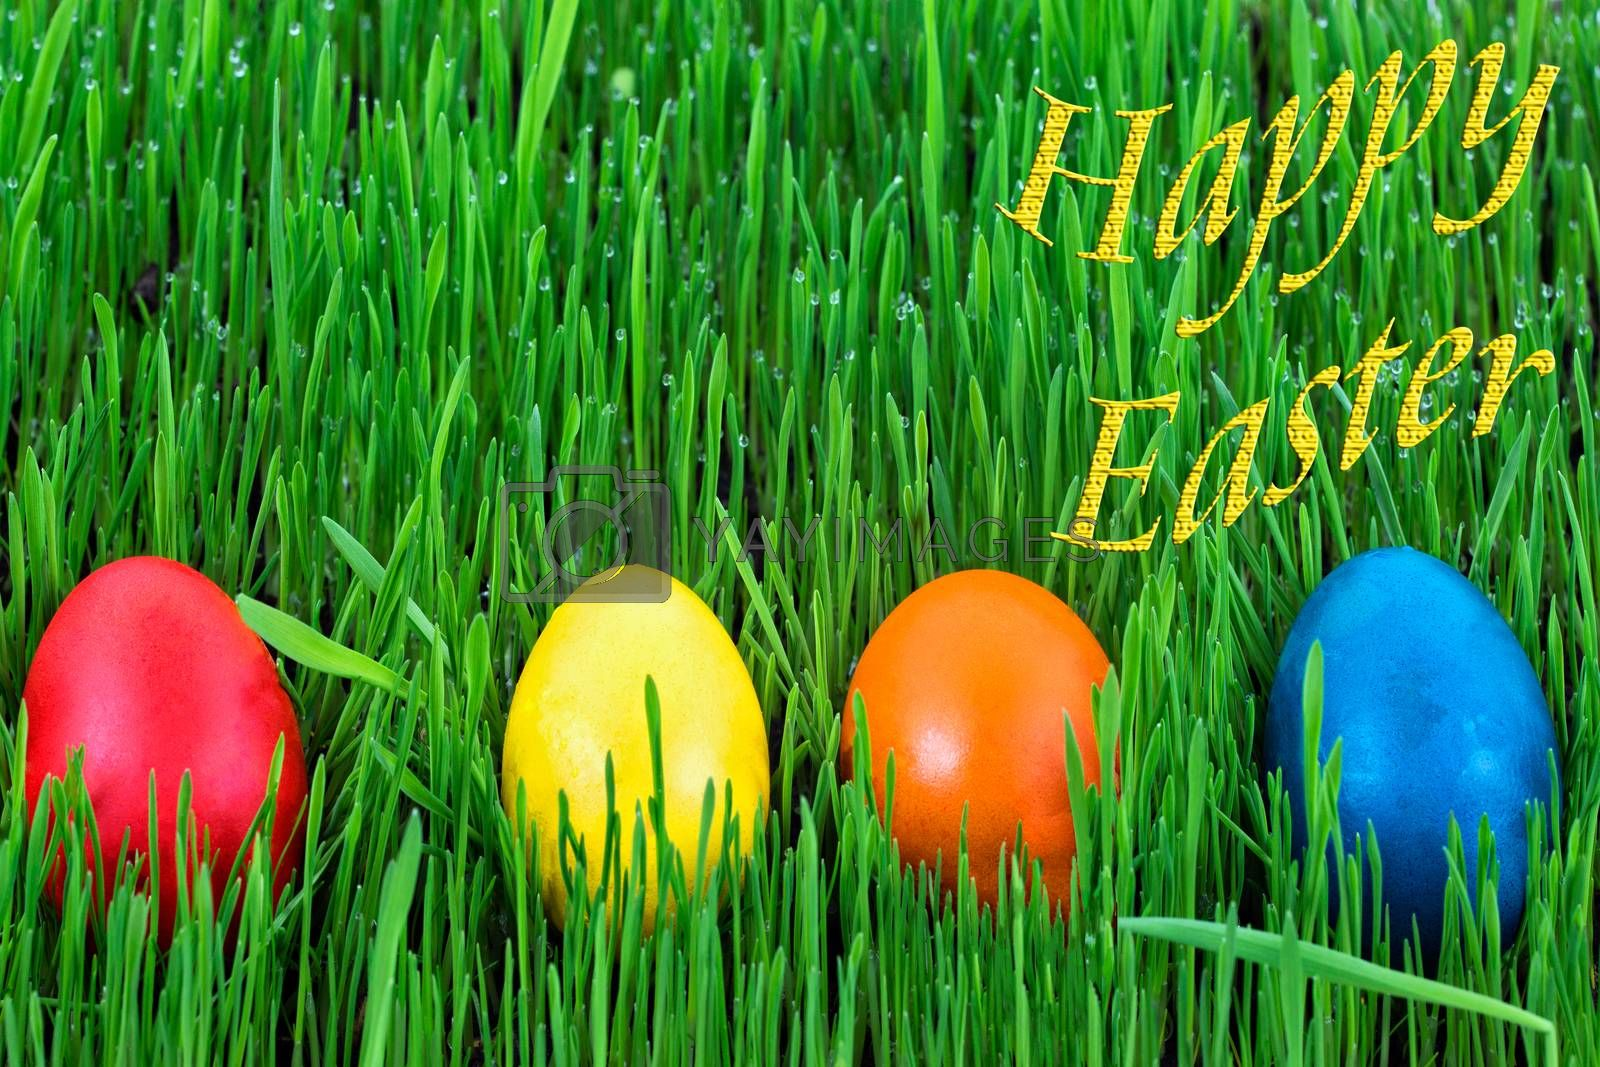 Happy Easter - Easter eggs in the green grass